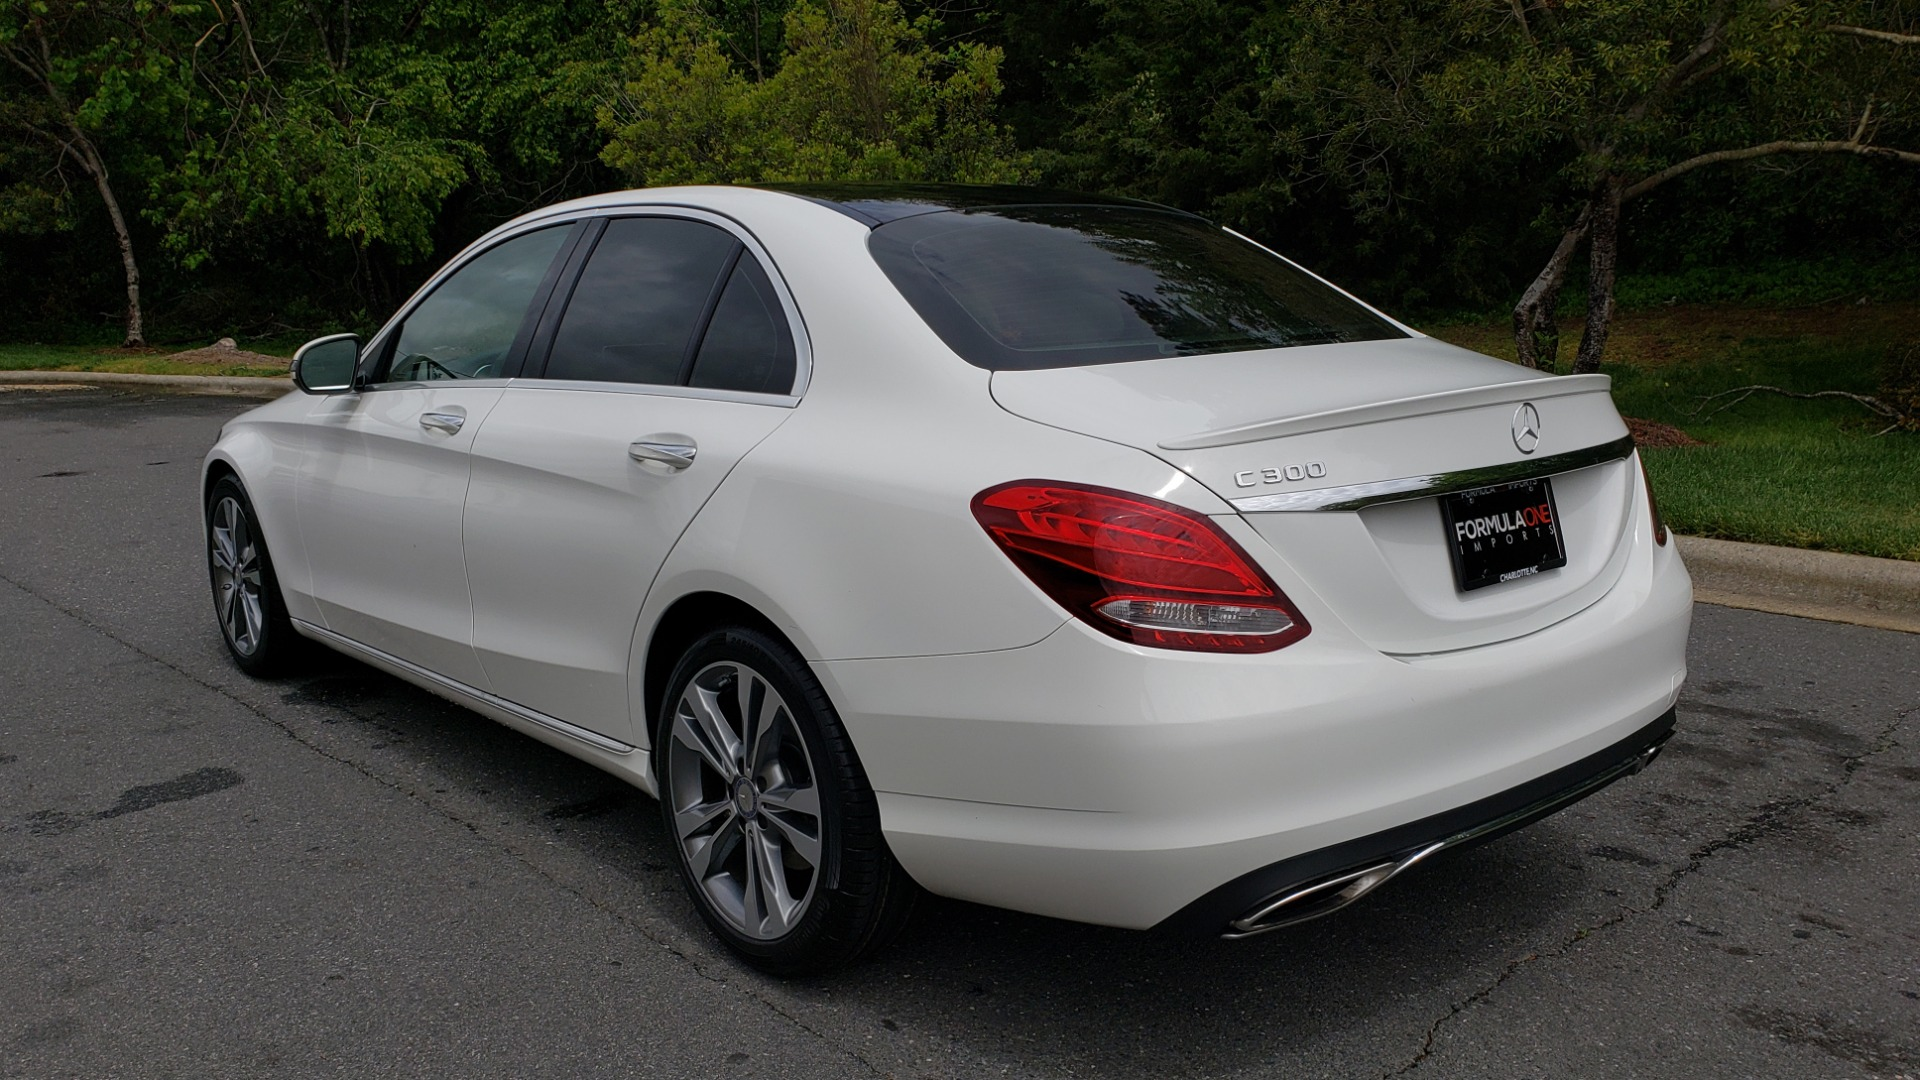 Used 2017 Mercedes-Benz C-Class C 300 PREMIUM / NAV / PANO-ROOF / HTD STS / REARVIEW for sale Sold at Formula Imports in Charlotte NC 28227 3